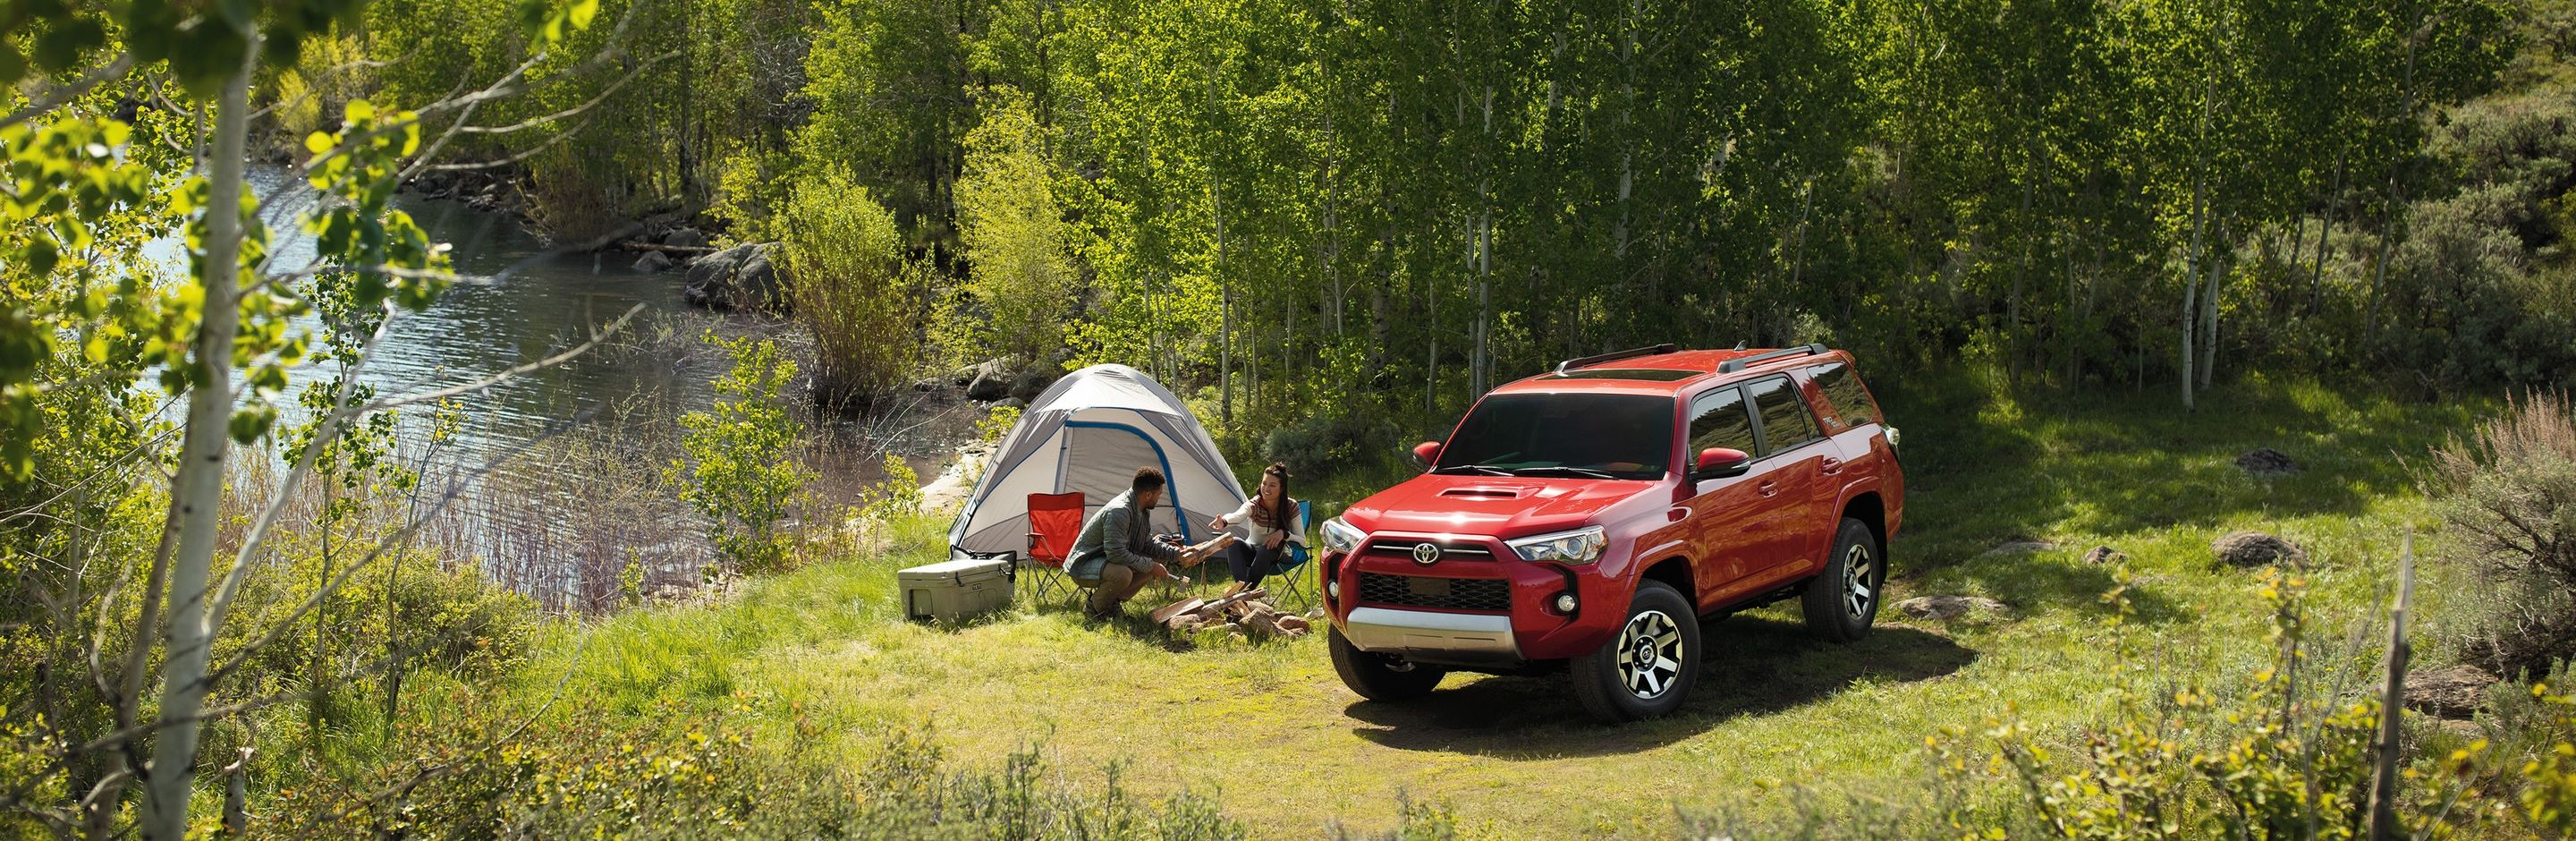 2020 Toyota 4Runner Lease in Rockford, IL